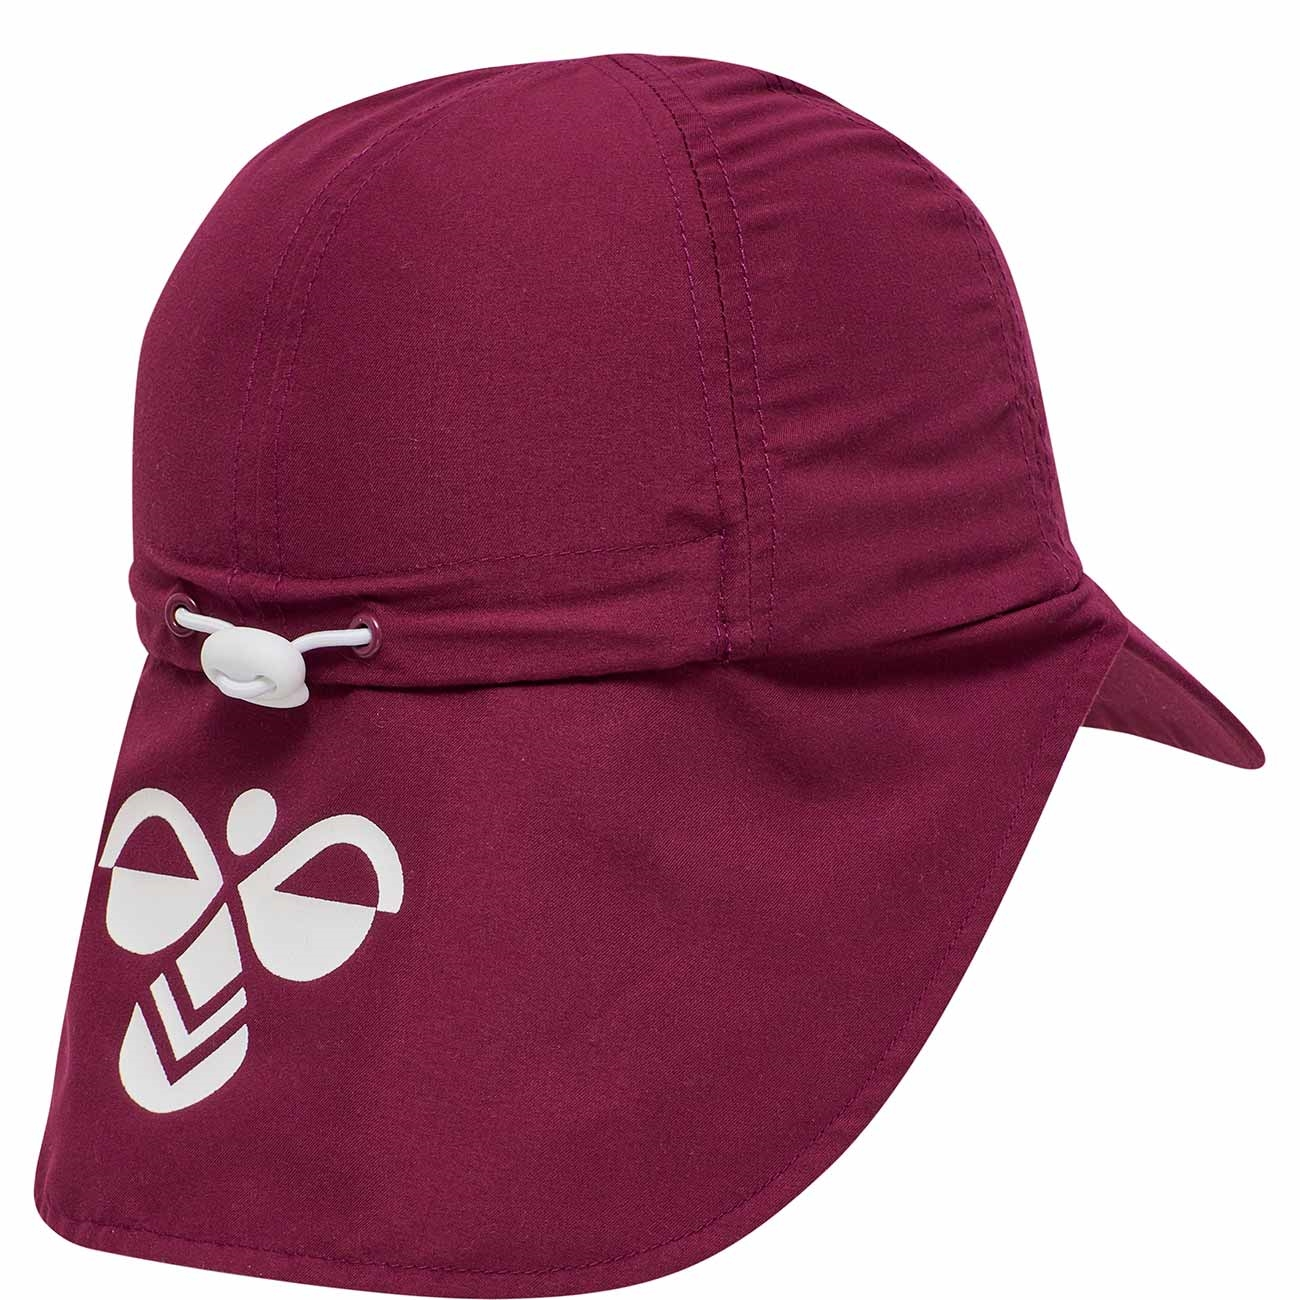 hummel-breeze-cap-hat-purple-potion-bordeaux